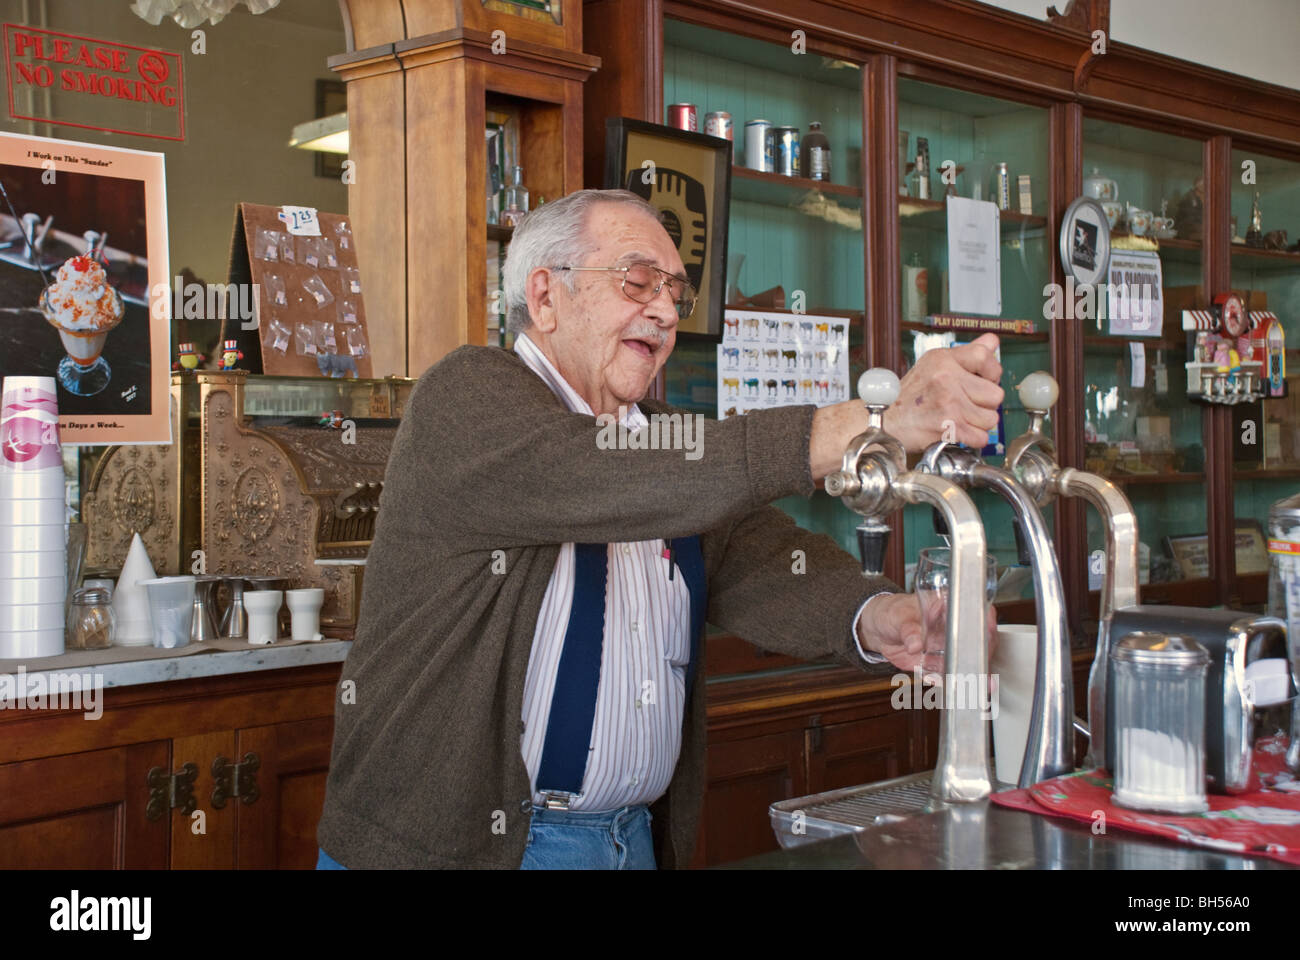 Roy is always busy making delicious treats in his old-fashioned ice cream parlor in Carrizozo, New Mexico. Stock Photo